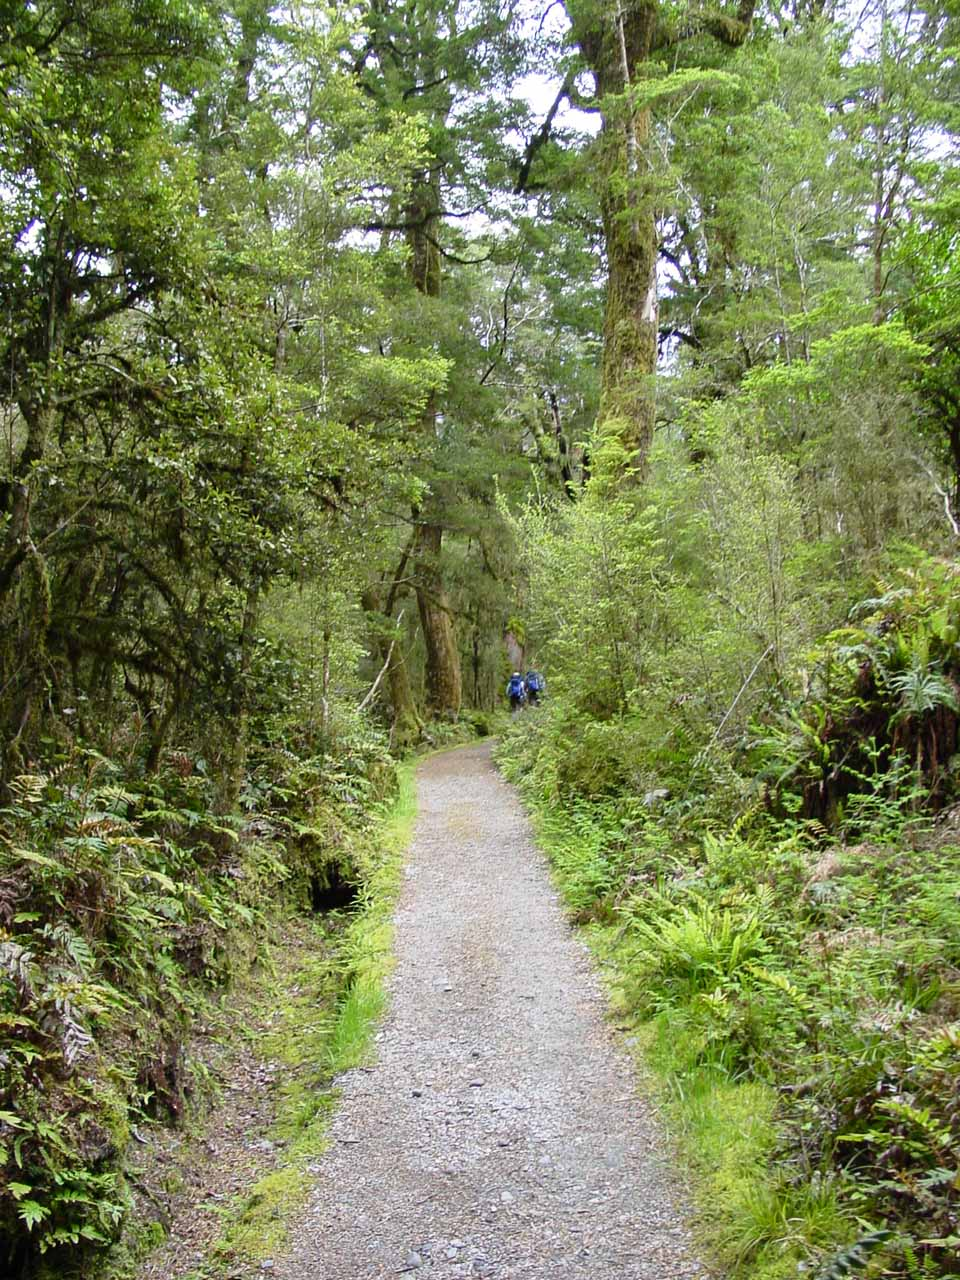 On the lush Milford Track